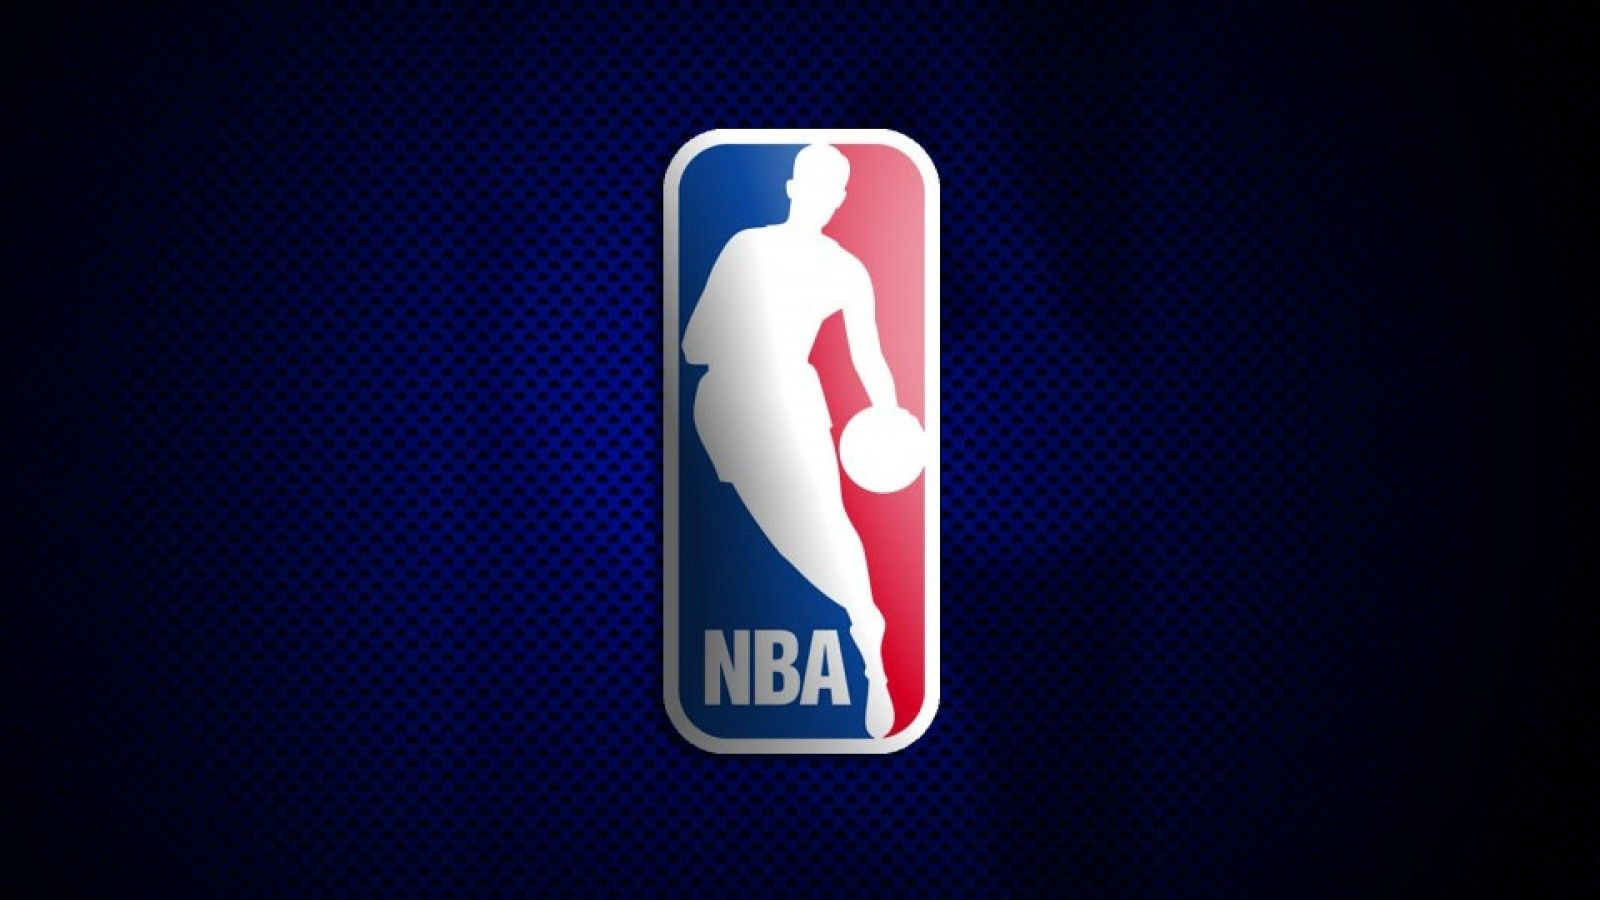 Best images about NBA WALLPAPERS on Pinterest  Logos, Artworks 1600x900